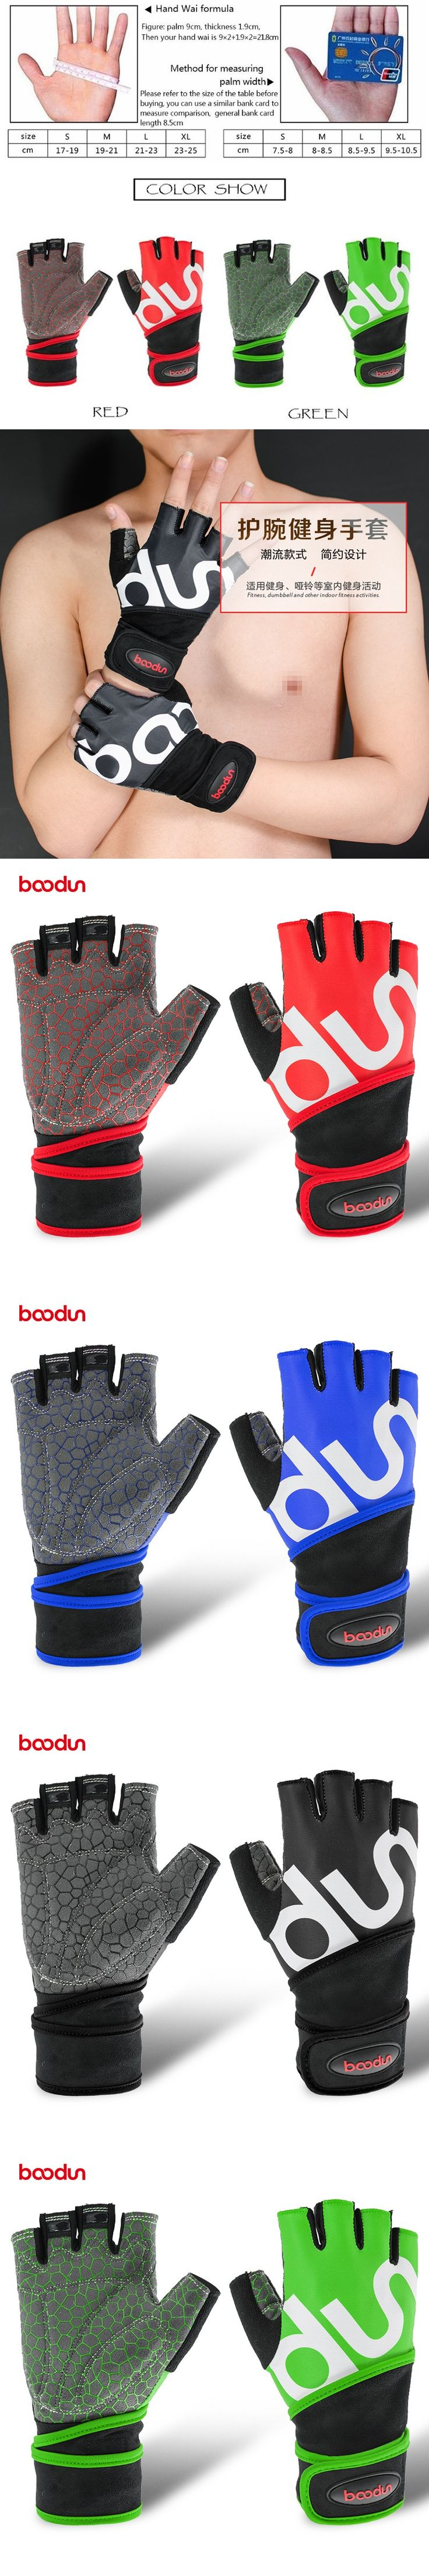 Boodun Men Women Half Finger Crossfit Gym Gloves Fitness Gloves Body BuildingWeight Lifting Wrist Sport Gloves for Musculation